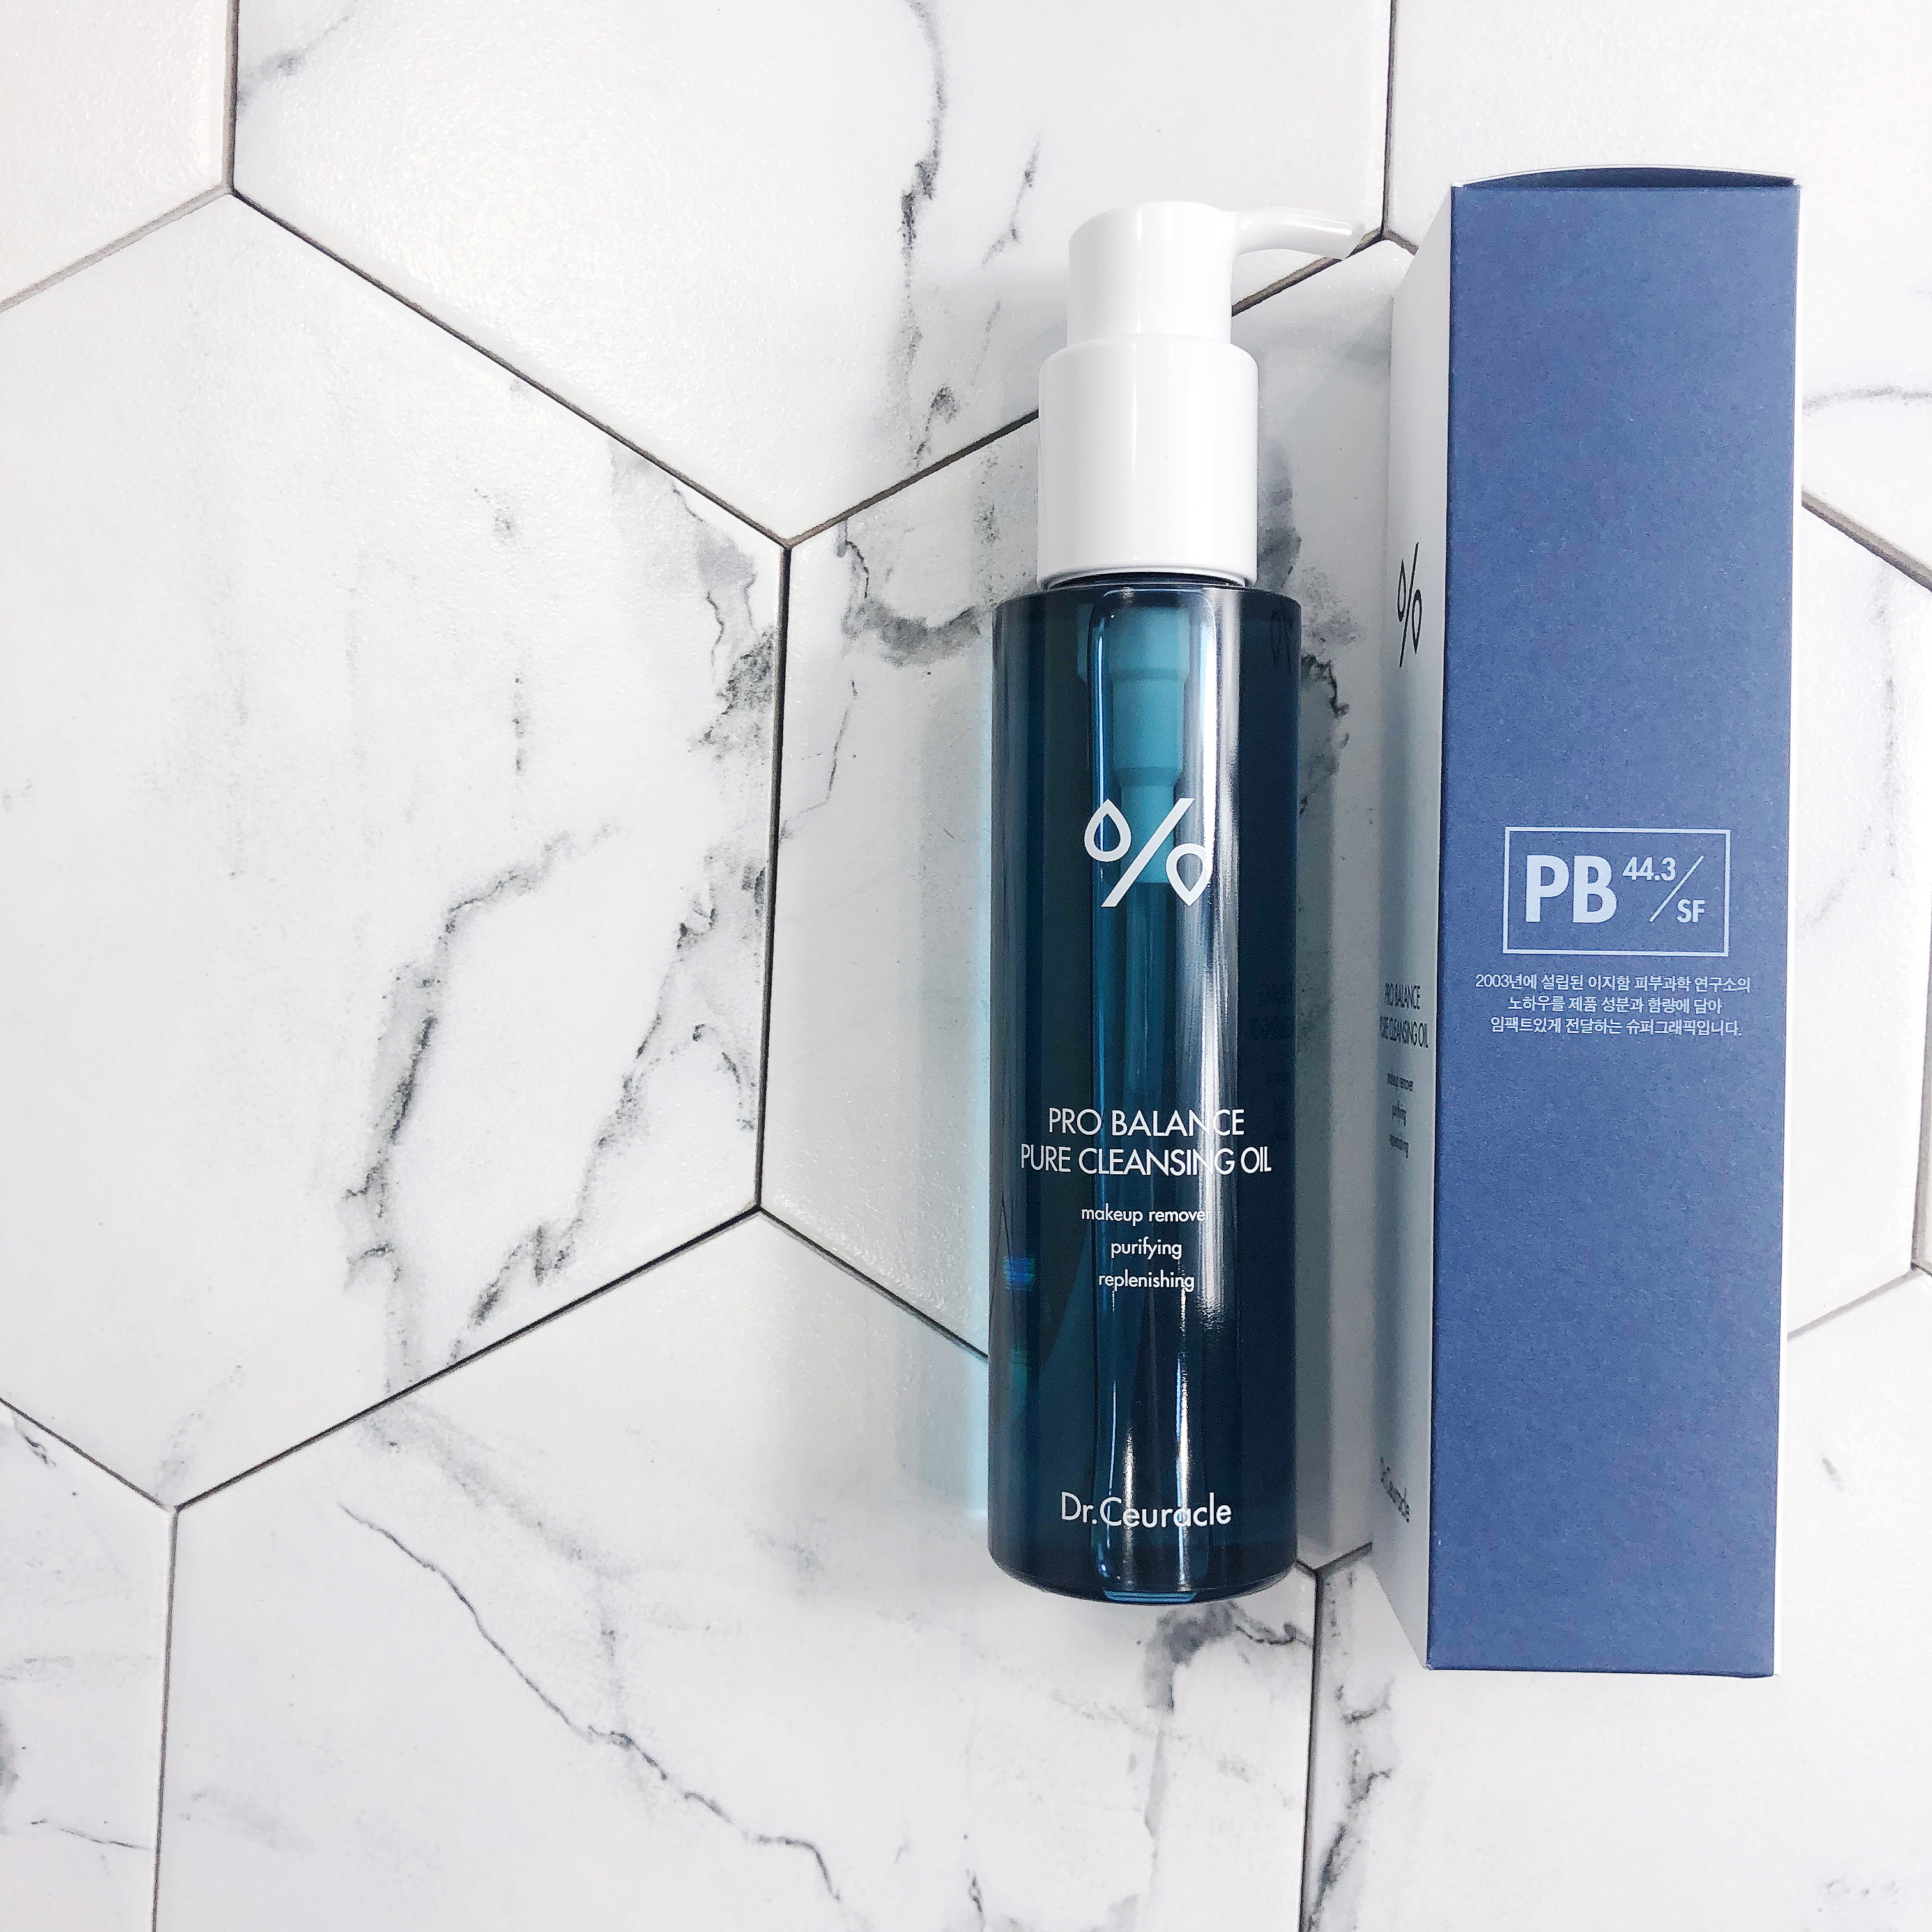 Pro Balance Pure Cleansing Oil